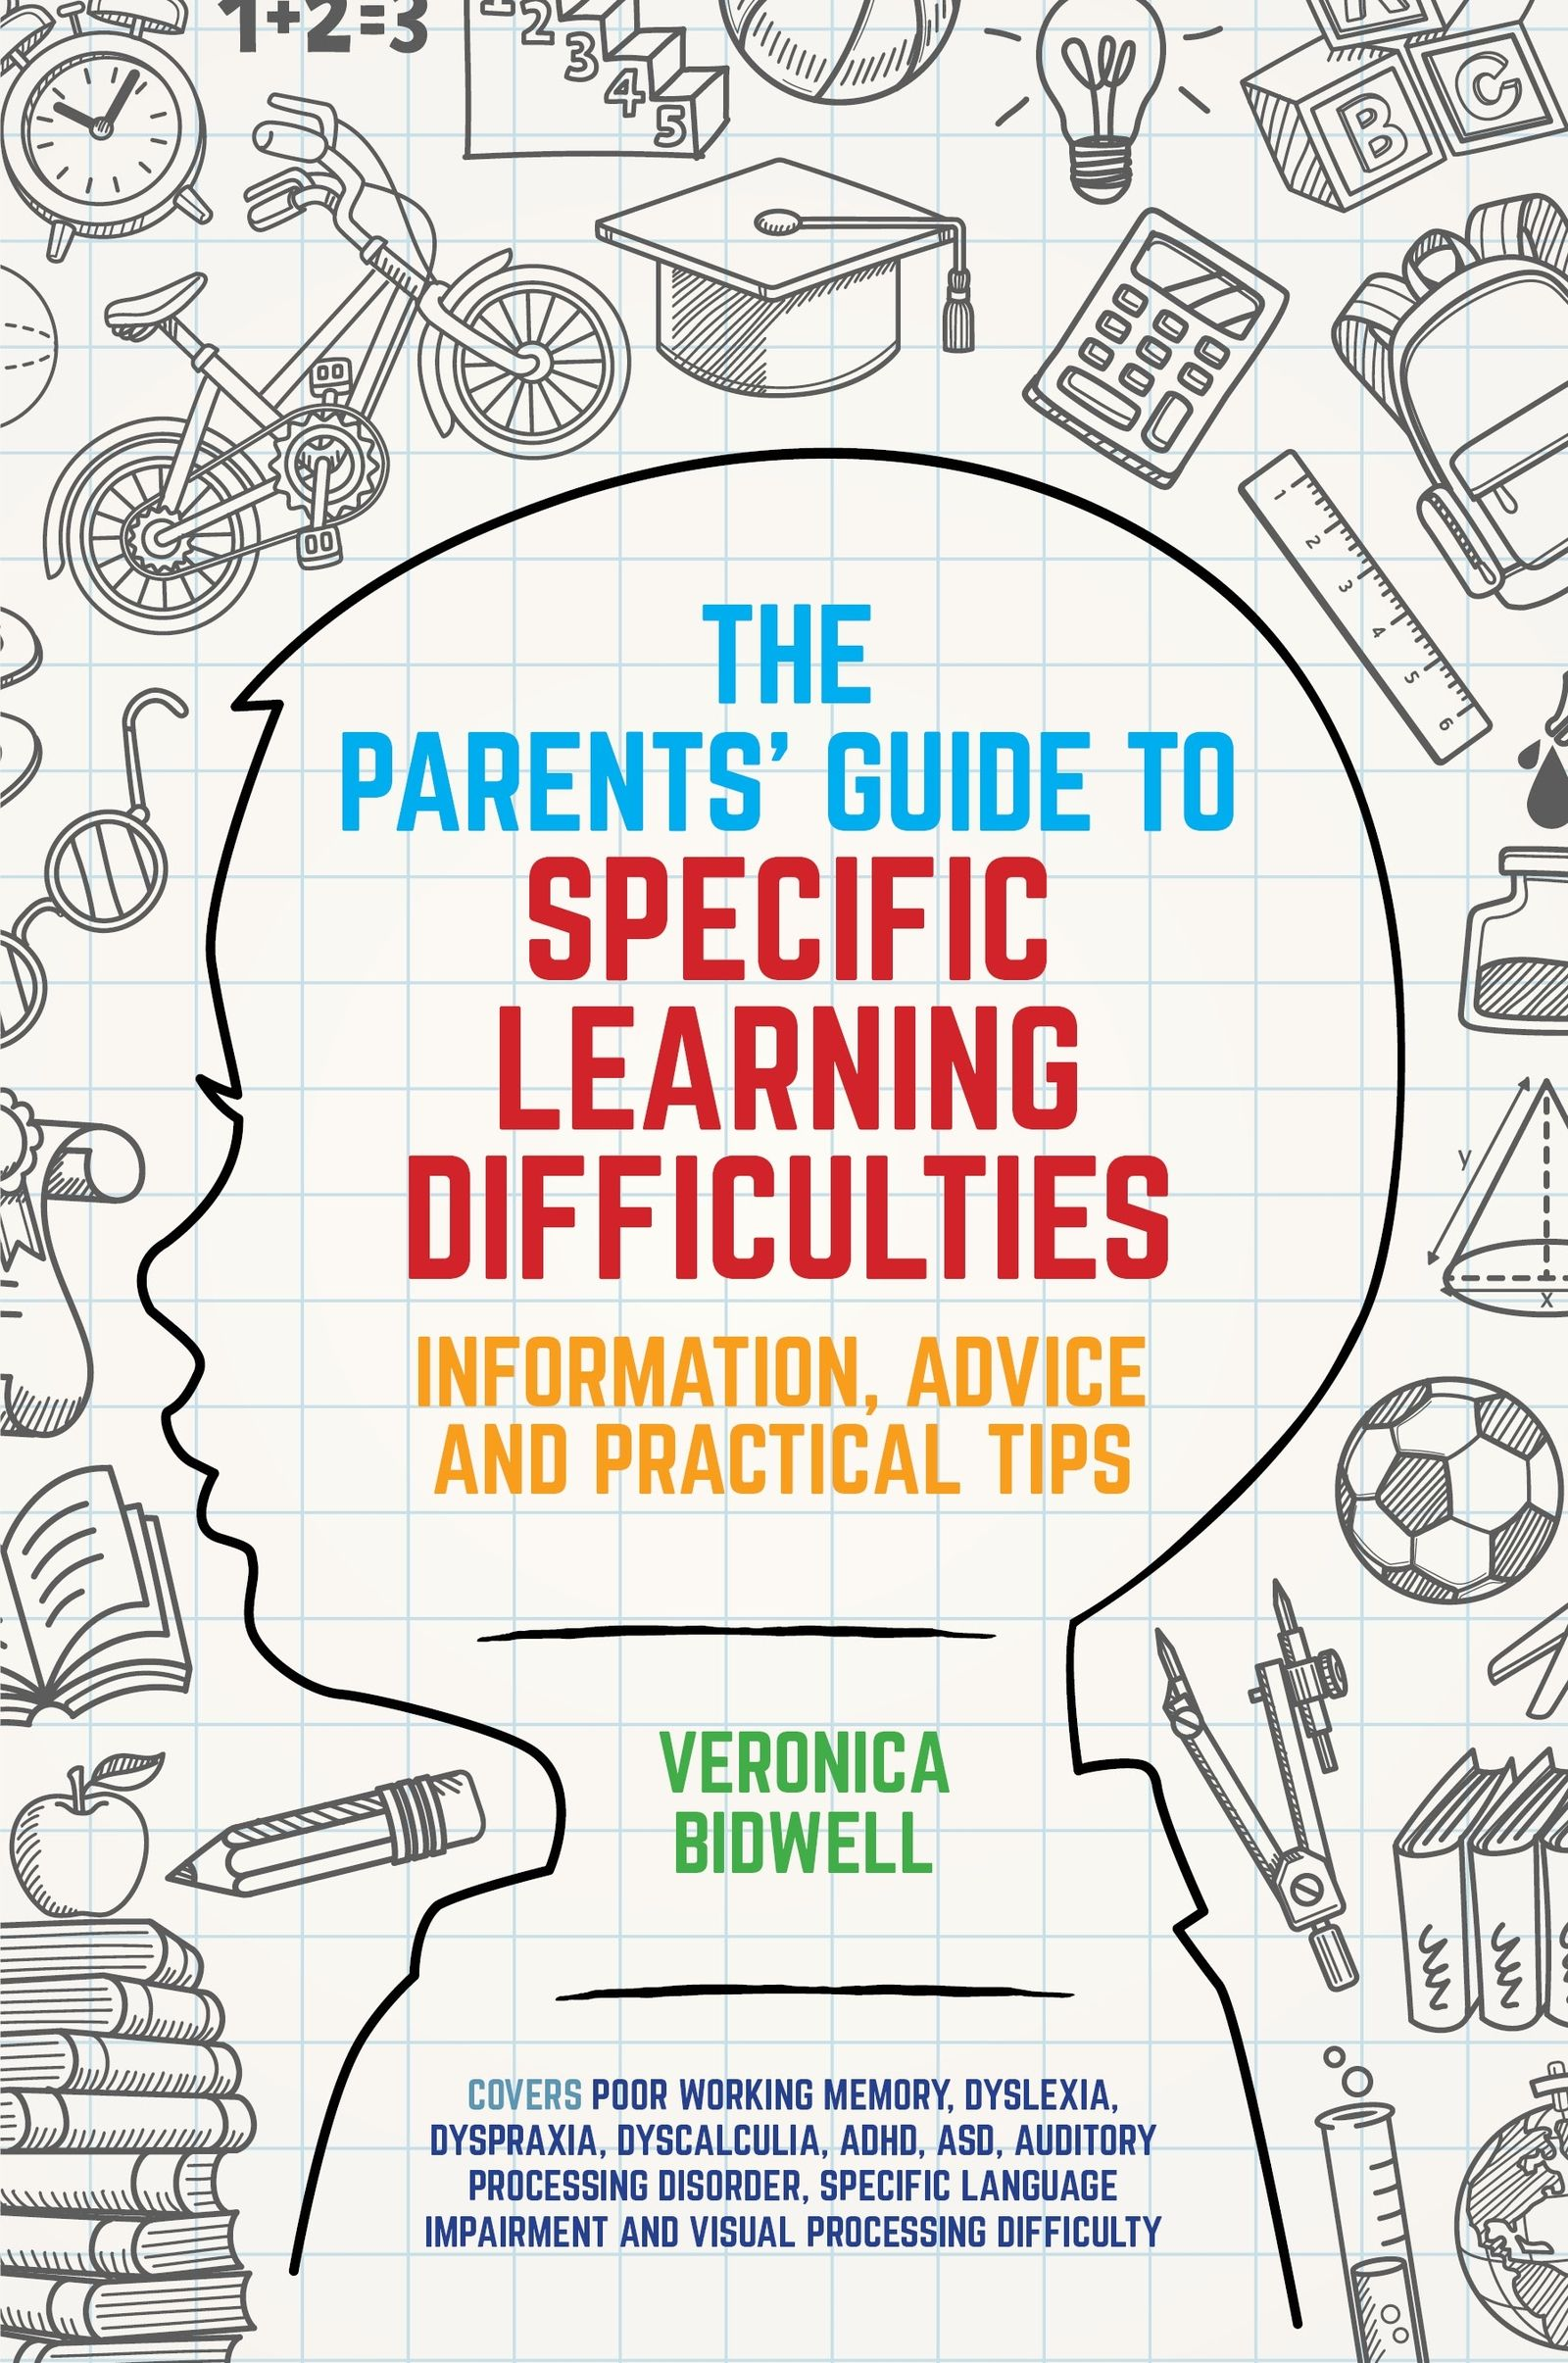 The Iep Decoded Parents Guide By >> Veronica Bidwell Author Of The Parents Guide To Specific Learning